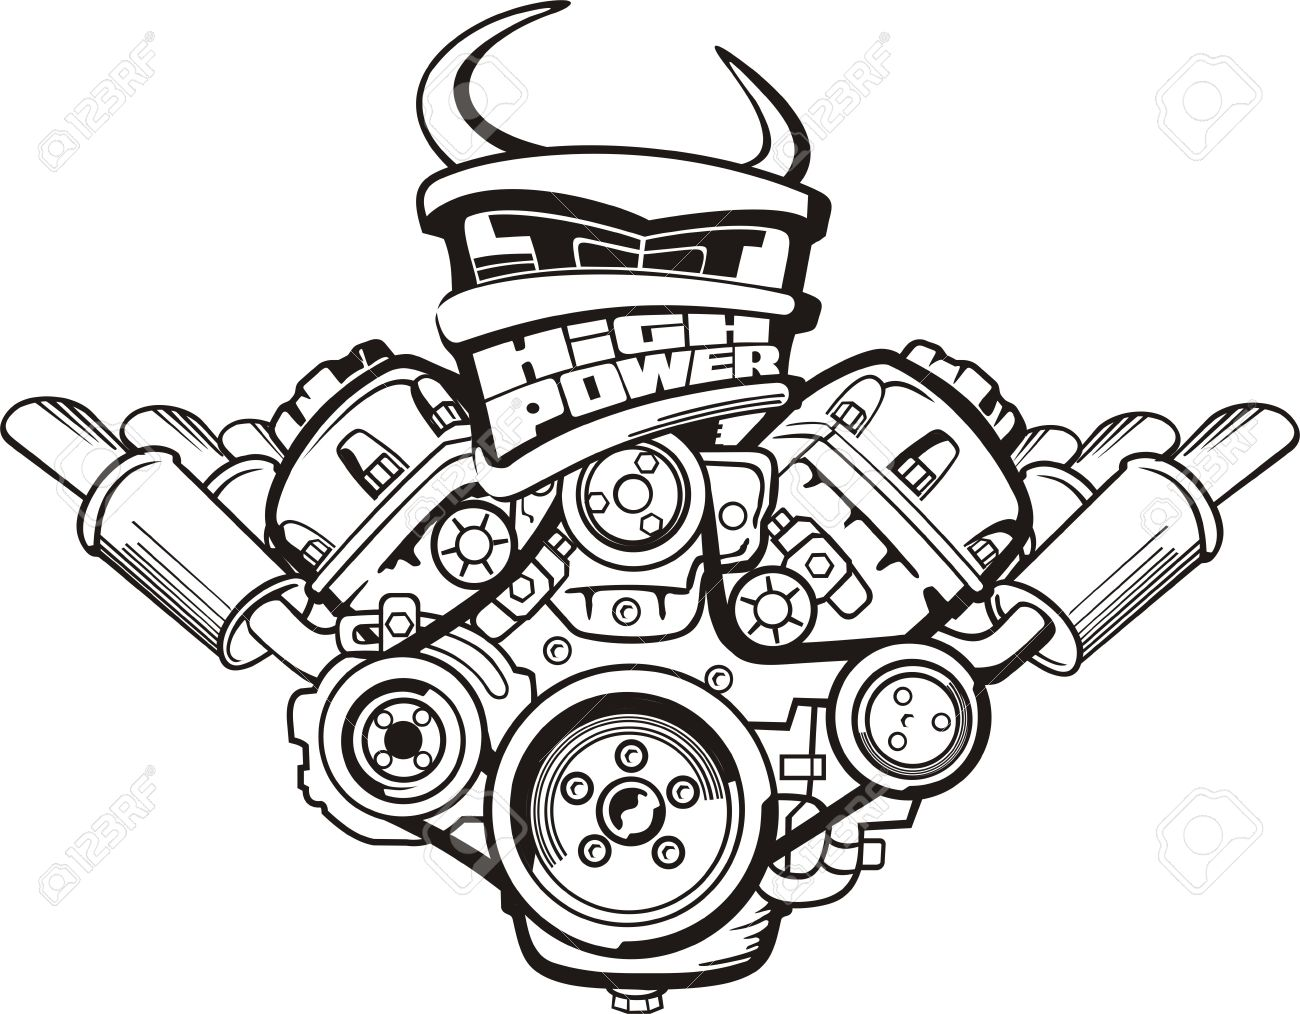 Drawing High Power Car Engine Sign Royalty Free Cliparts, Vectors ...